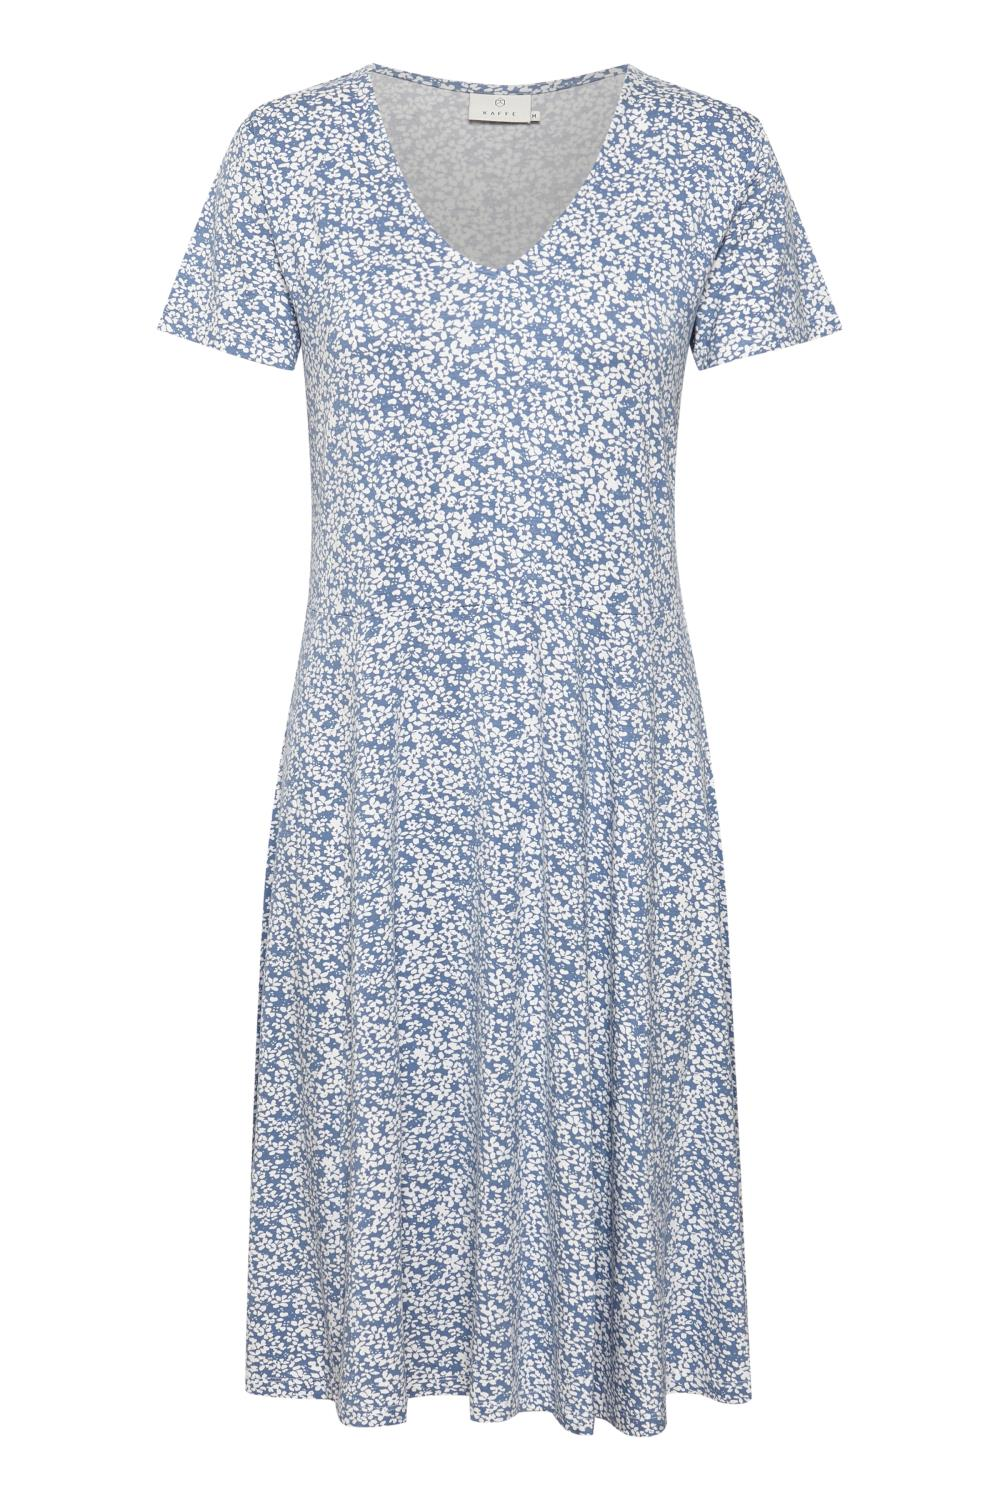 Kaffe Molly Jersy Dress, blåmønstret